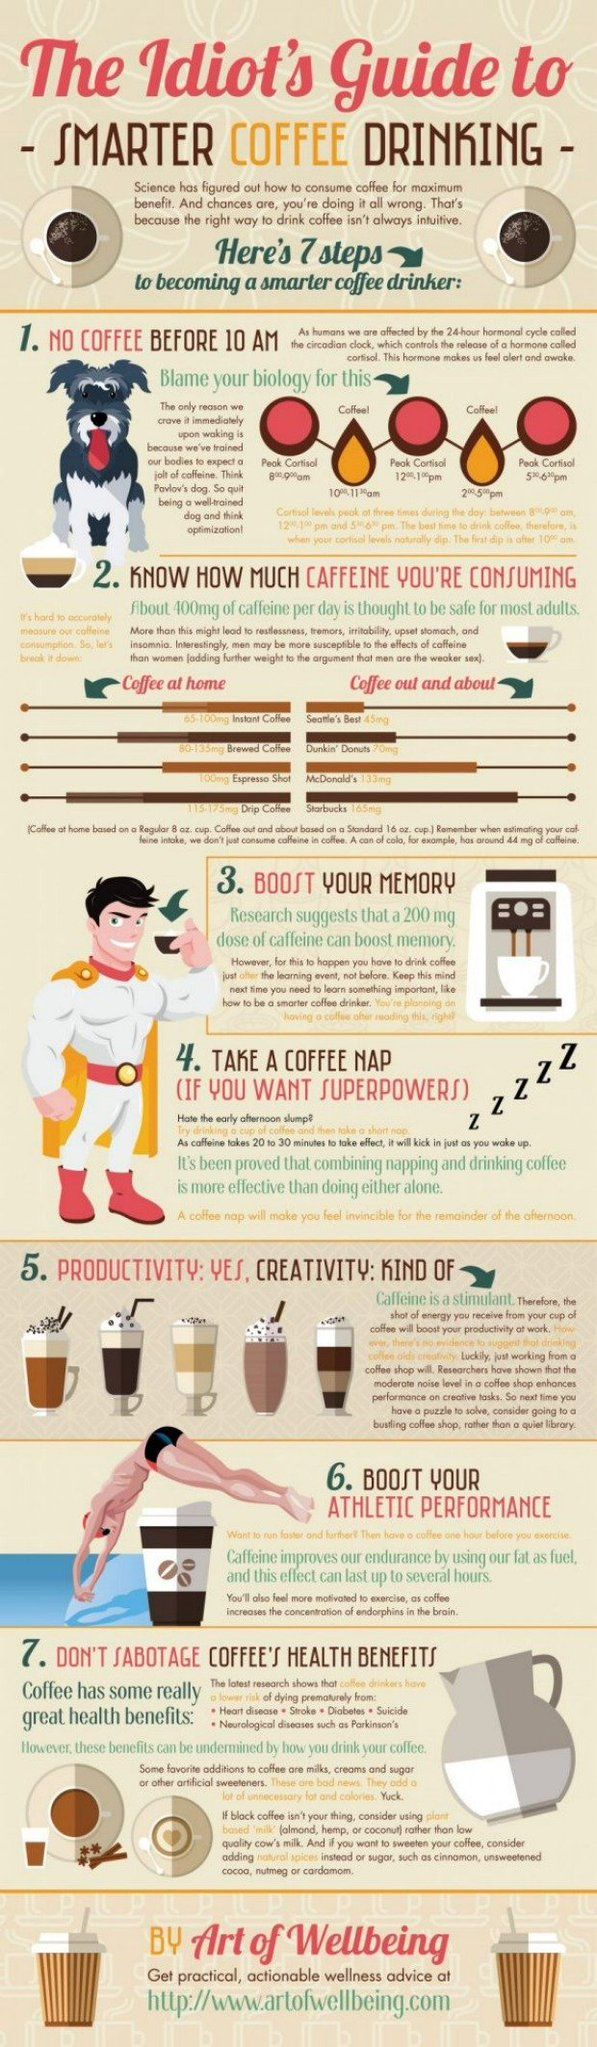 The idiots guide to smarter drinking of #coffee.